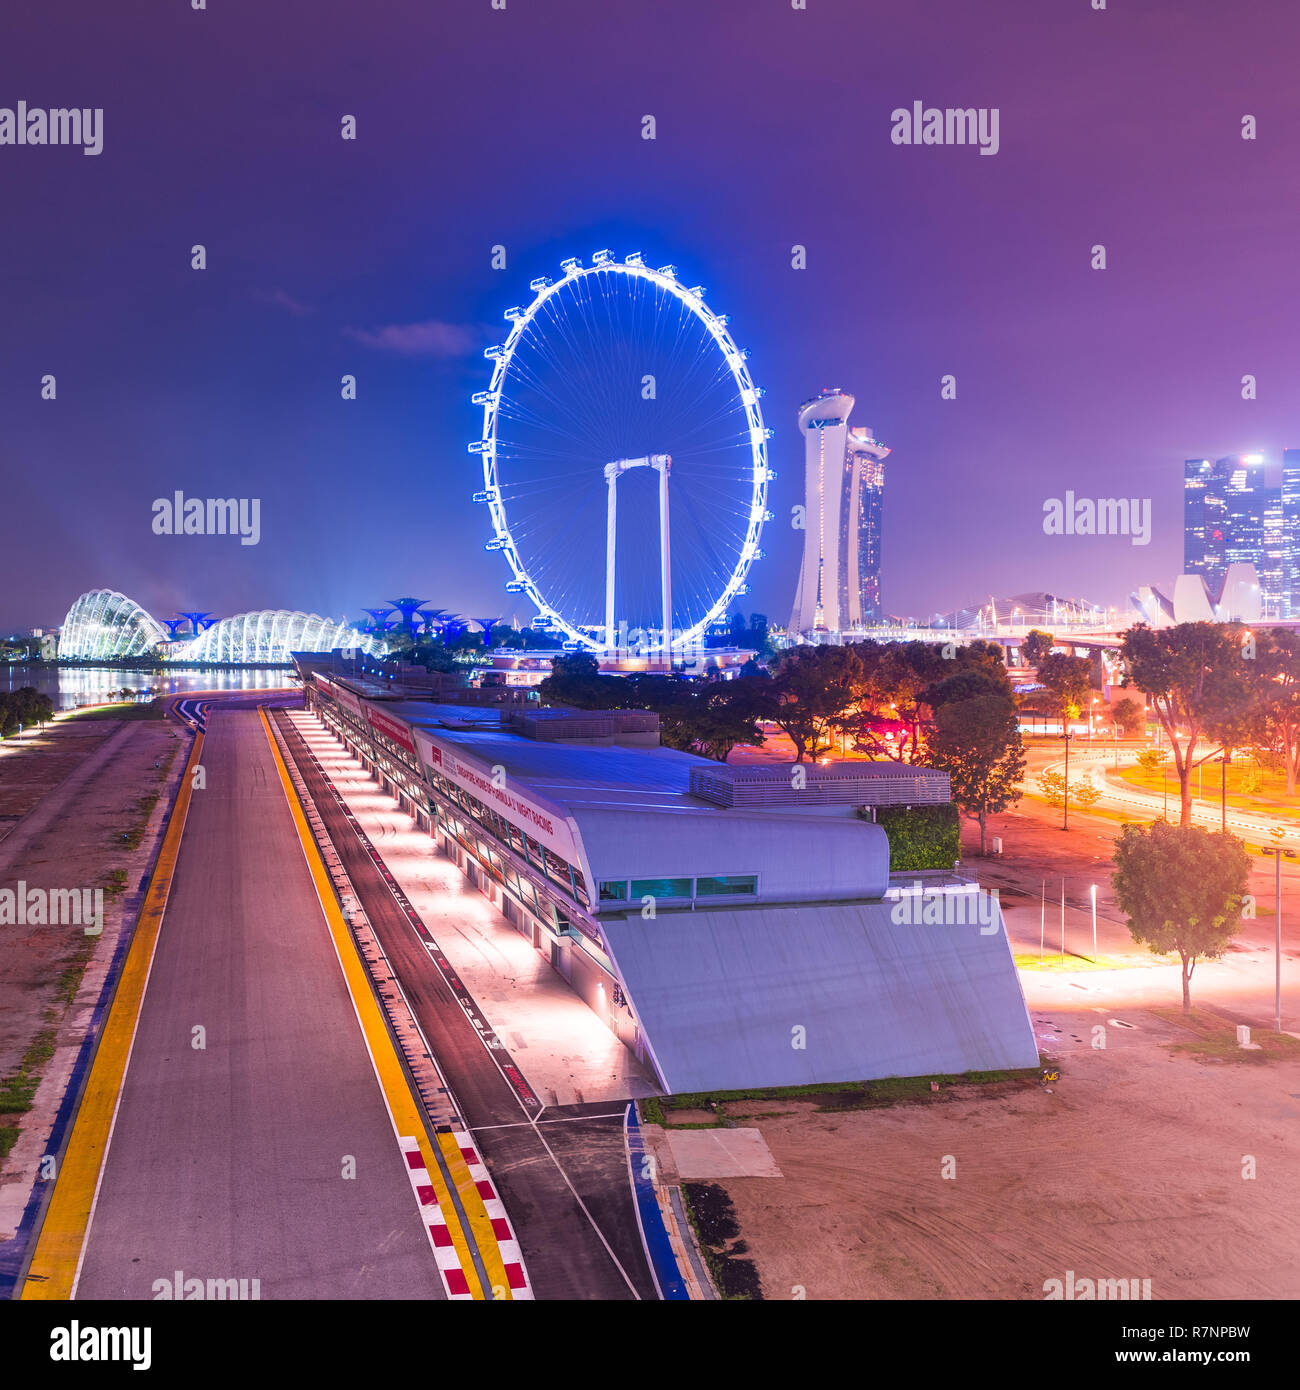 Singapore, 31 Oct 2018: a night viesw of the Formula One Singapore Grand Prix circuit stands in front of the Marina Bay area and the Flyer Wheel. Stock Photo